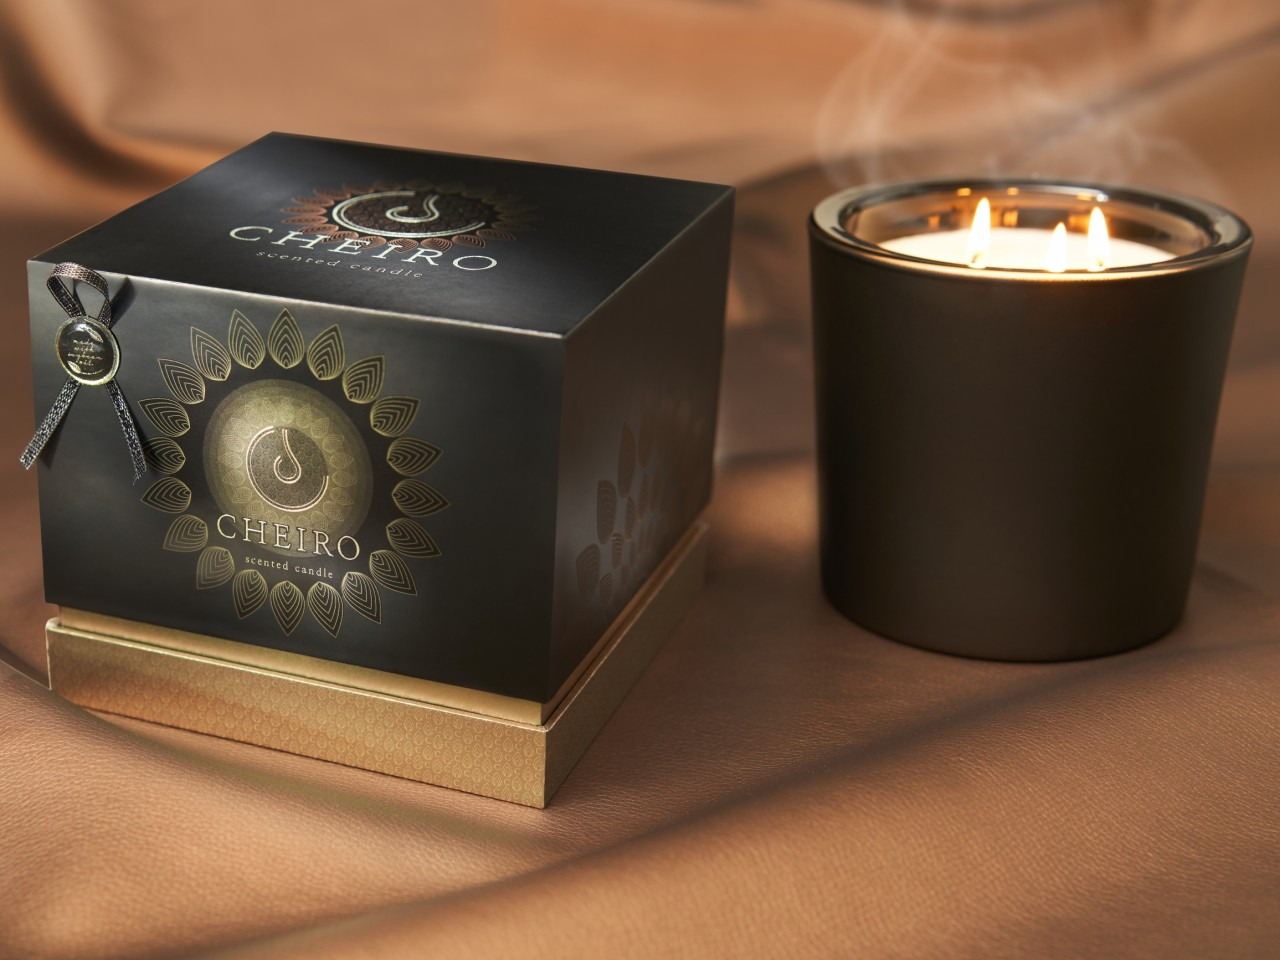 Natural Candles - Desirable and sustainable packaging design innovation for equally special candles.